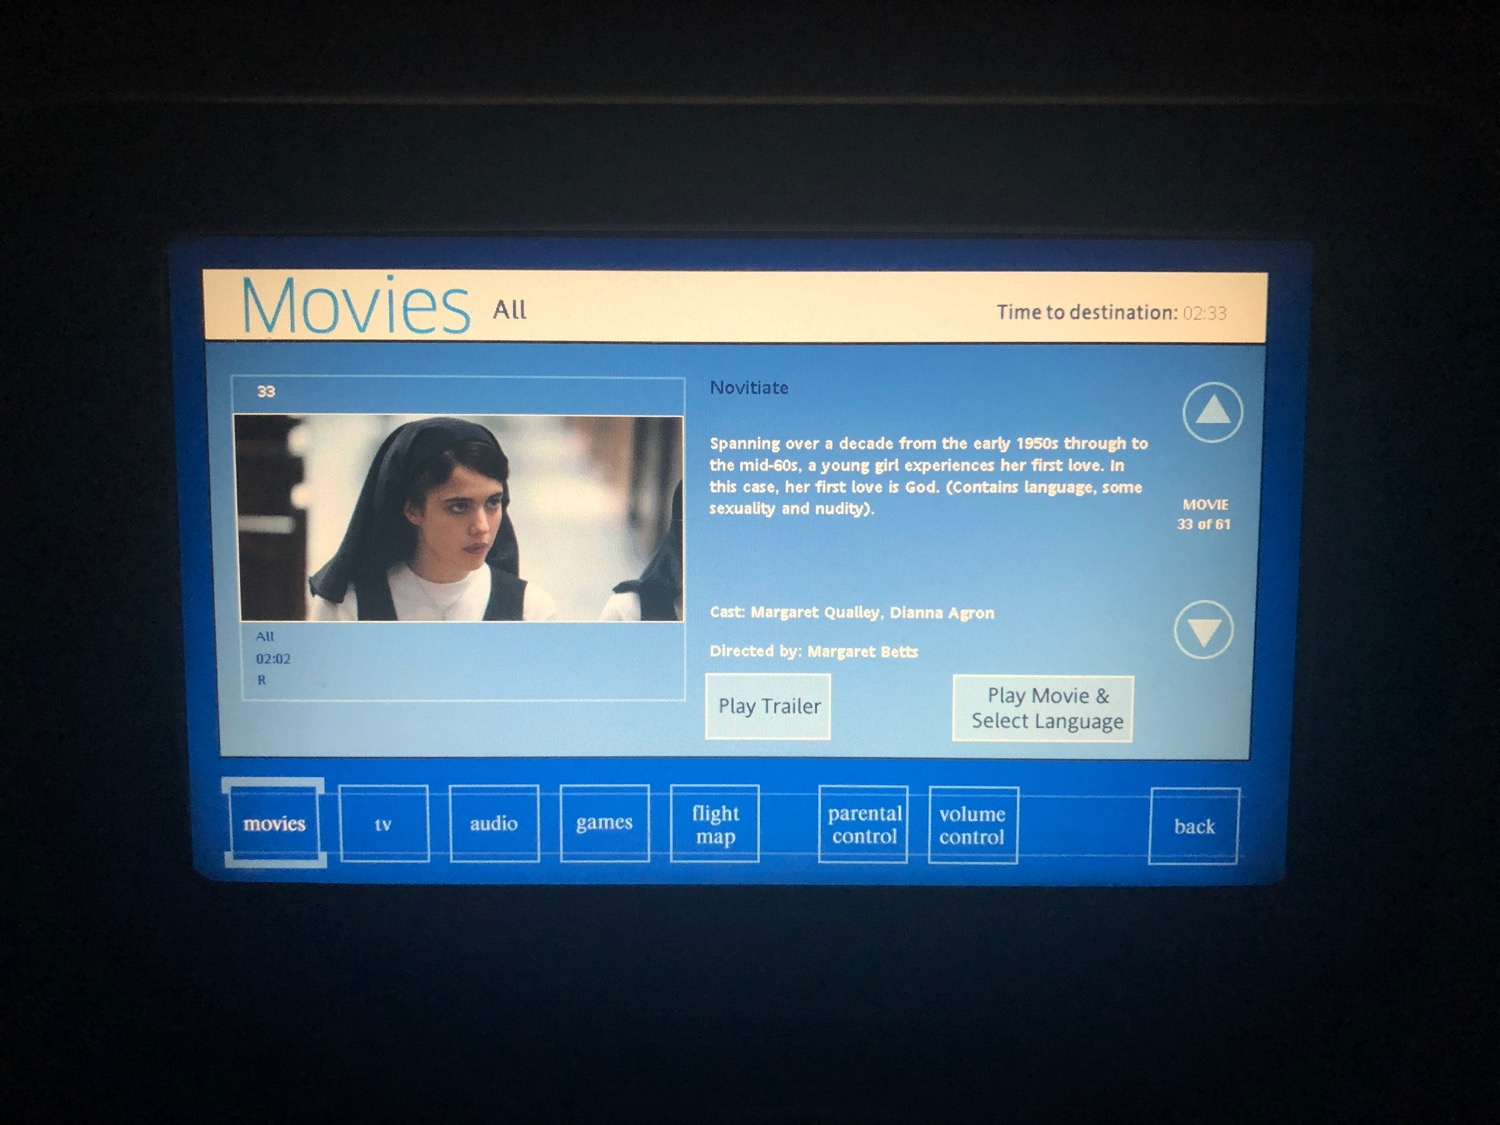 Should Airline Movies Be Edited? - Live and Let's Fly